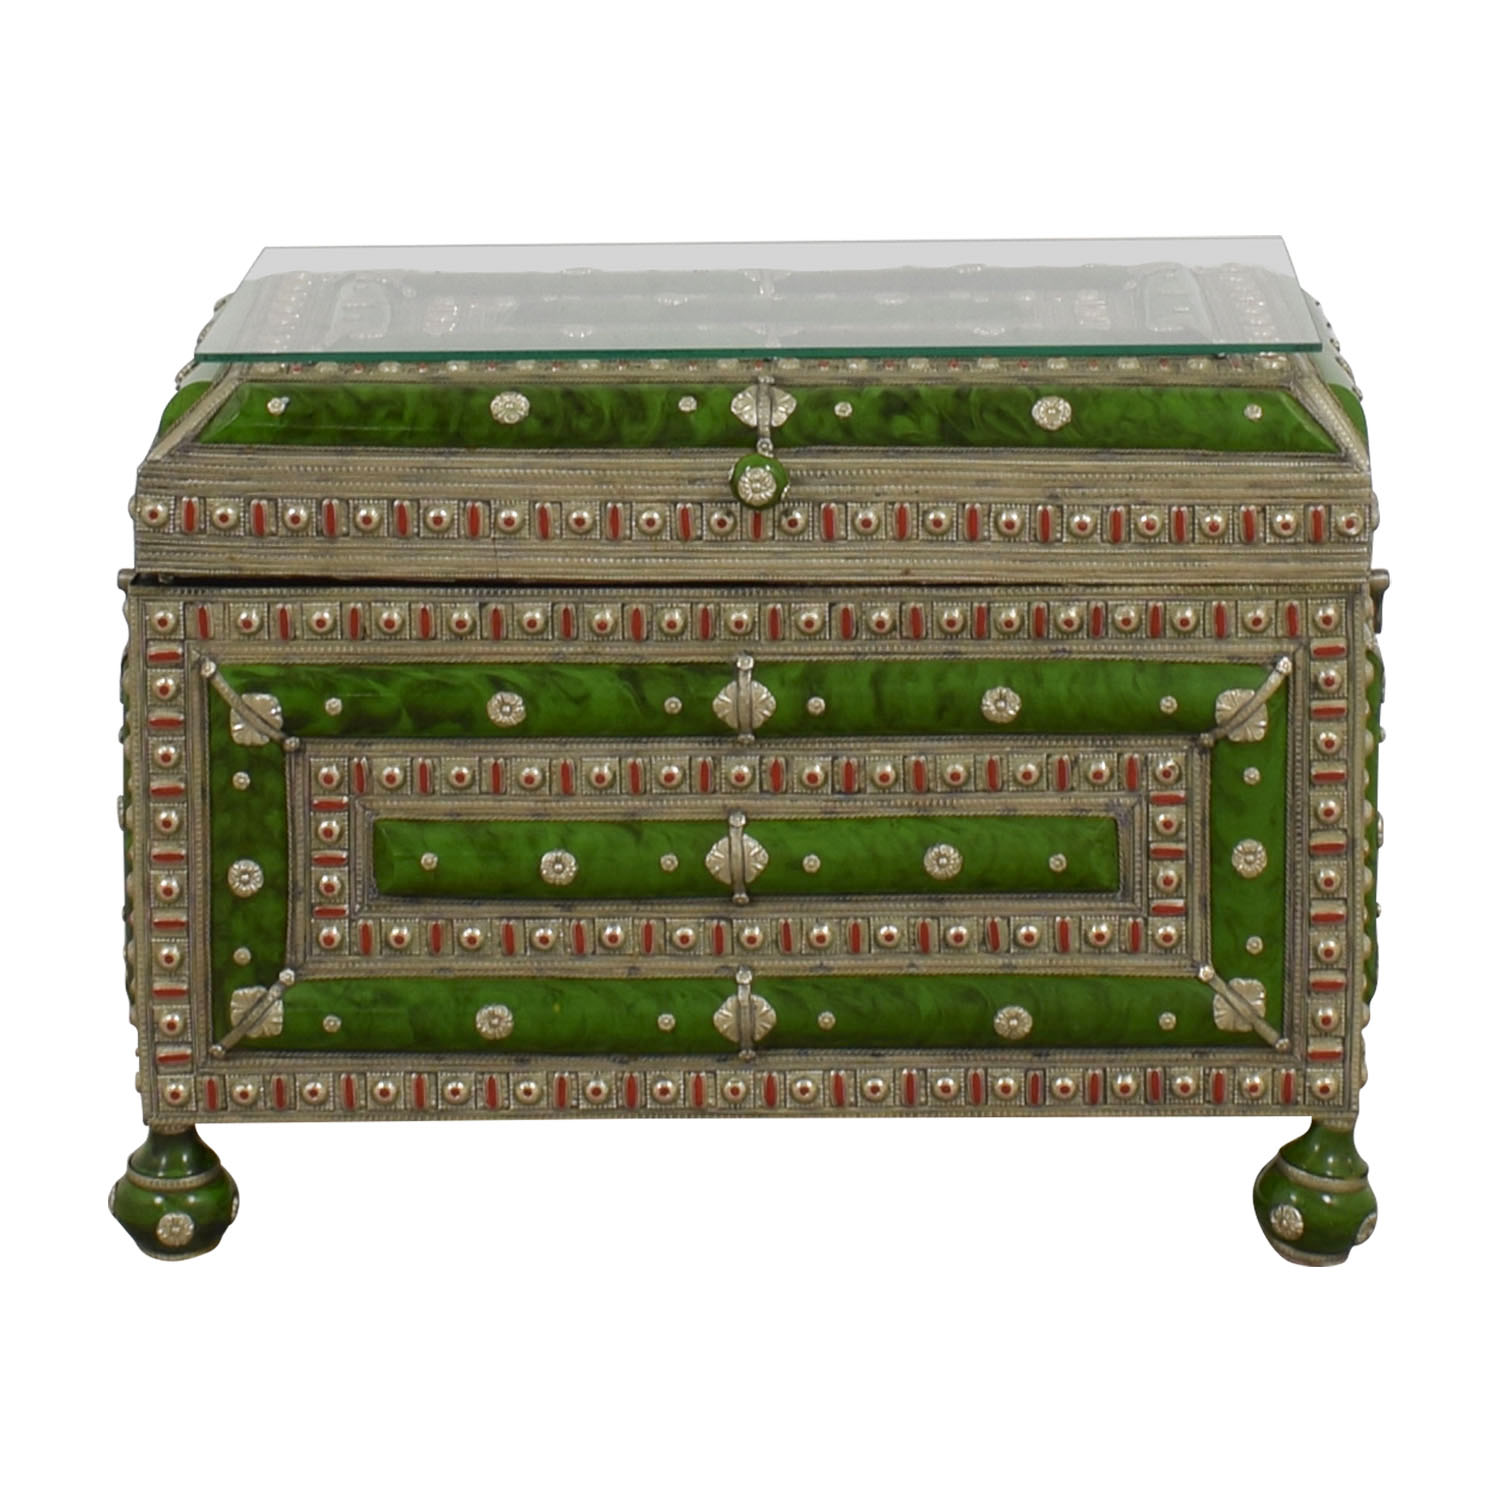 Antique Morroccan Precious Jewel Trunk and Table coupon